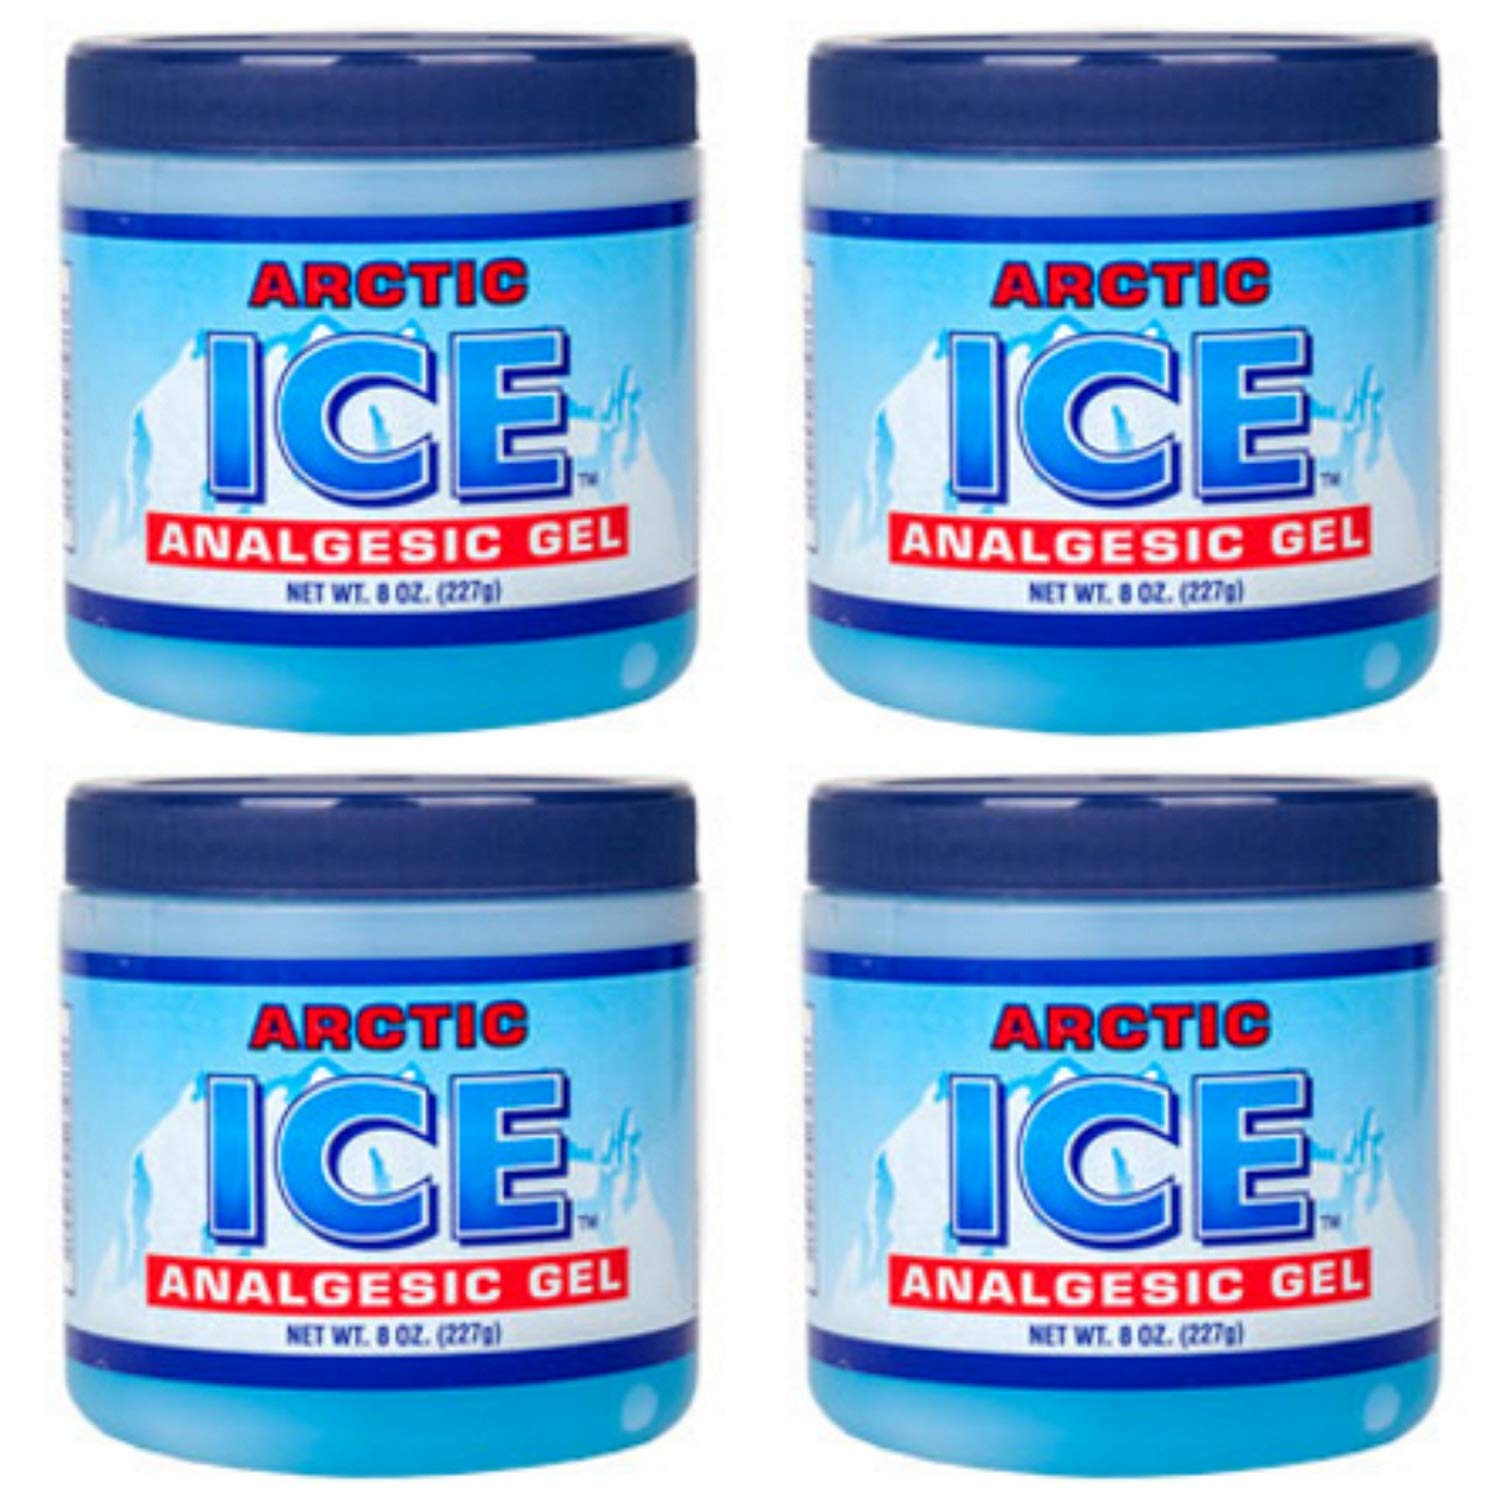 Ice Gel Pain Reliever - Smart Savers, Good for backaches, strains, sprains, arthritis, bruises, sports injuries By personal care